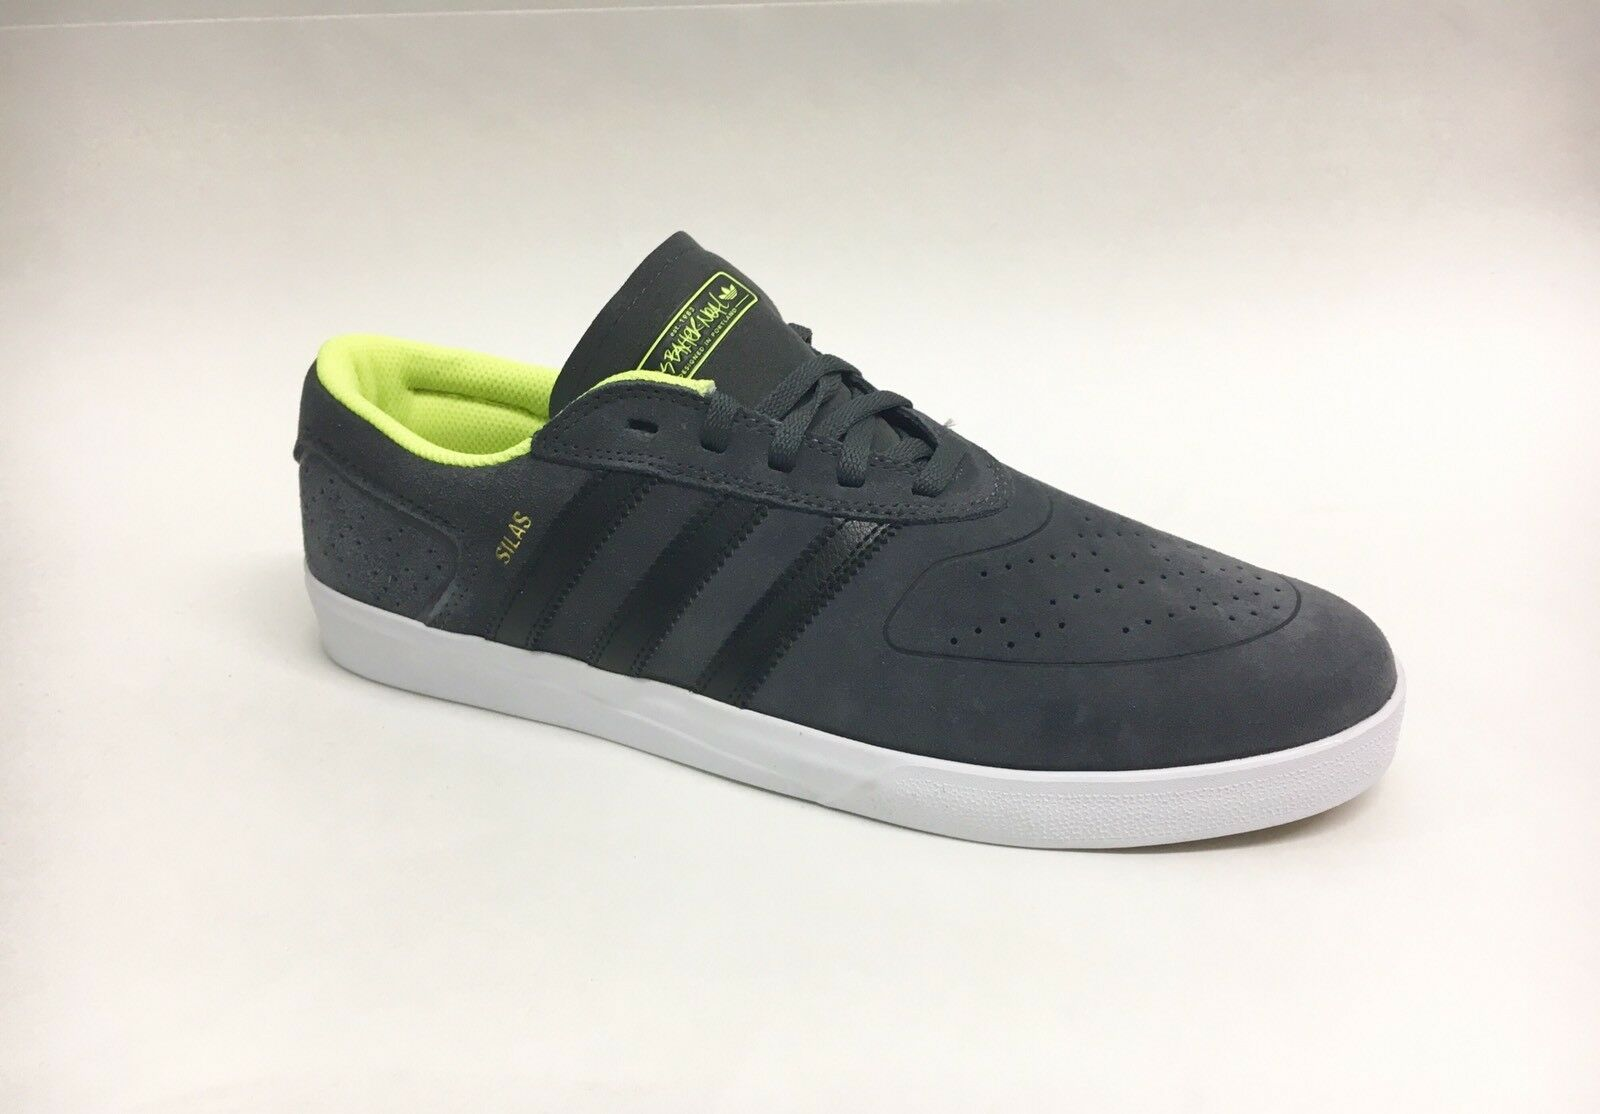 Adidas Skateboarding Shoe Silas Vulc Adv Gray Black Yellow Men's 11 Great discount